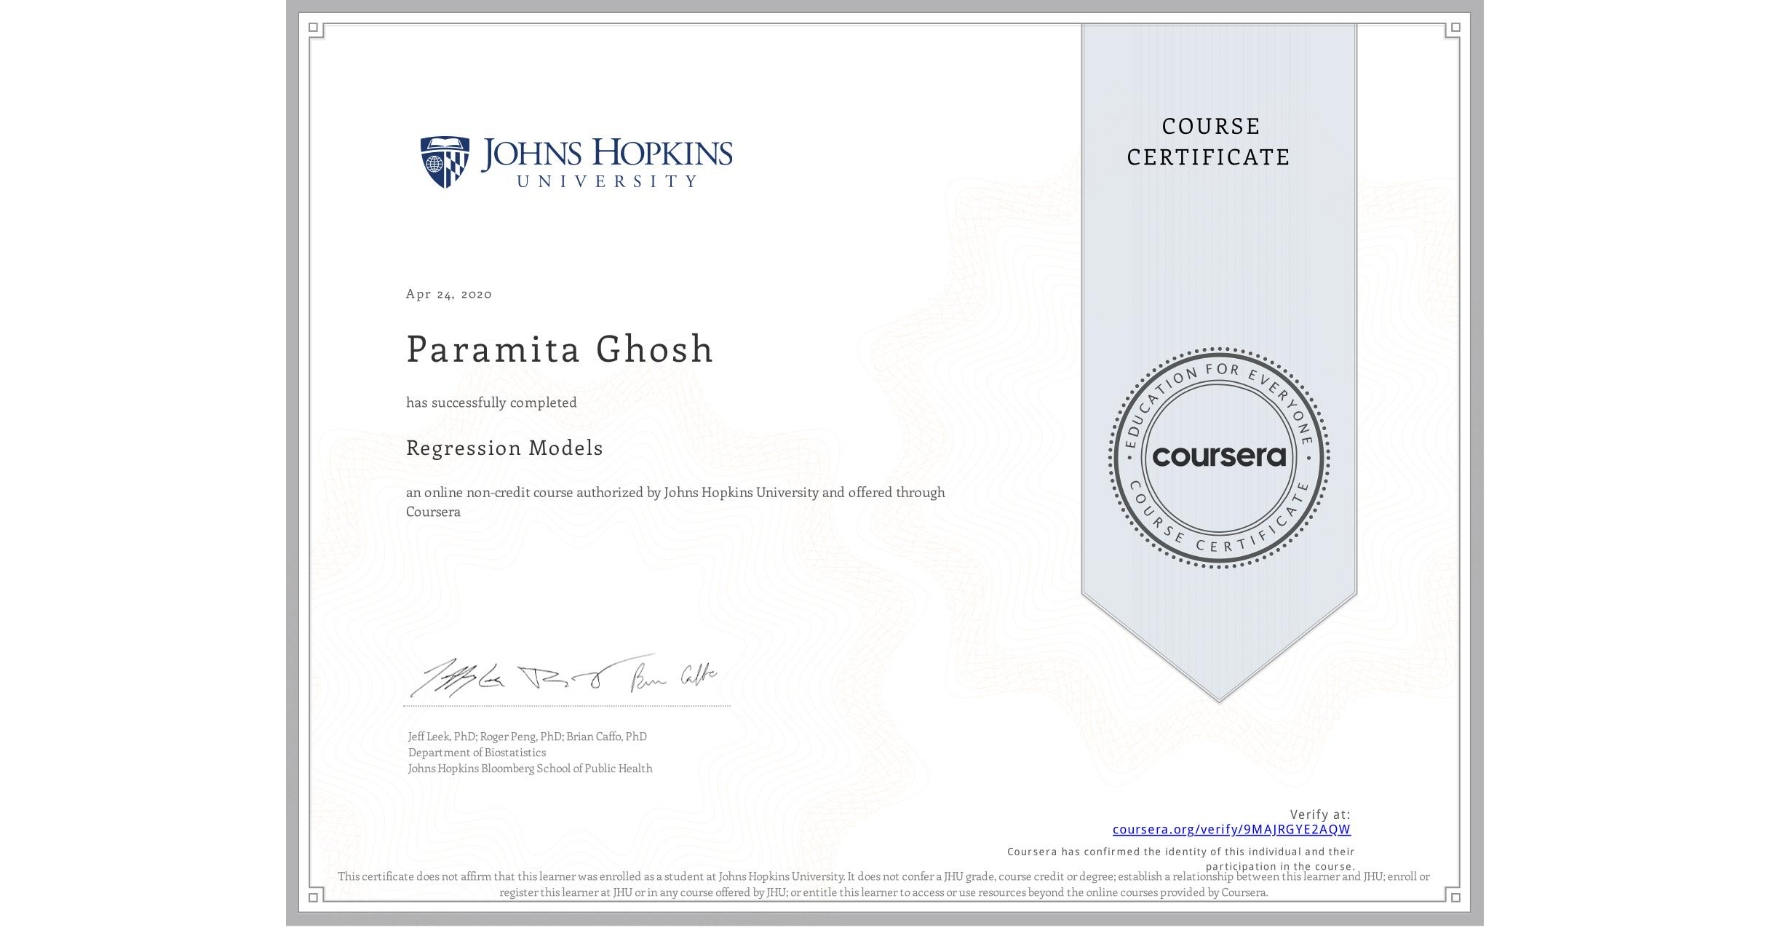 View certificate for Paramita Ghosh, Regression Models, an online non-credit course authorized by Johns Hopkins University and offered through Coursera